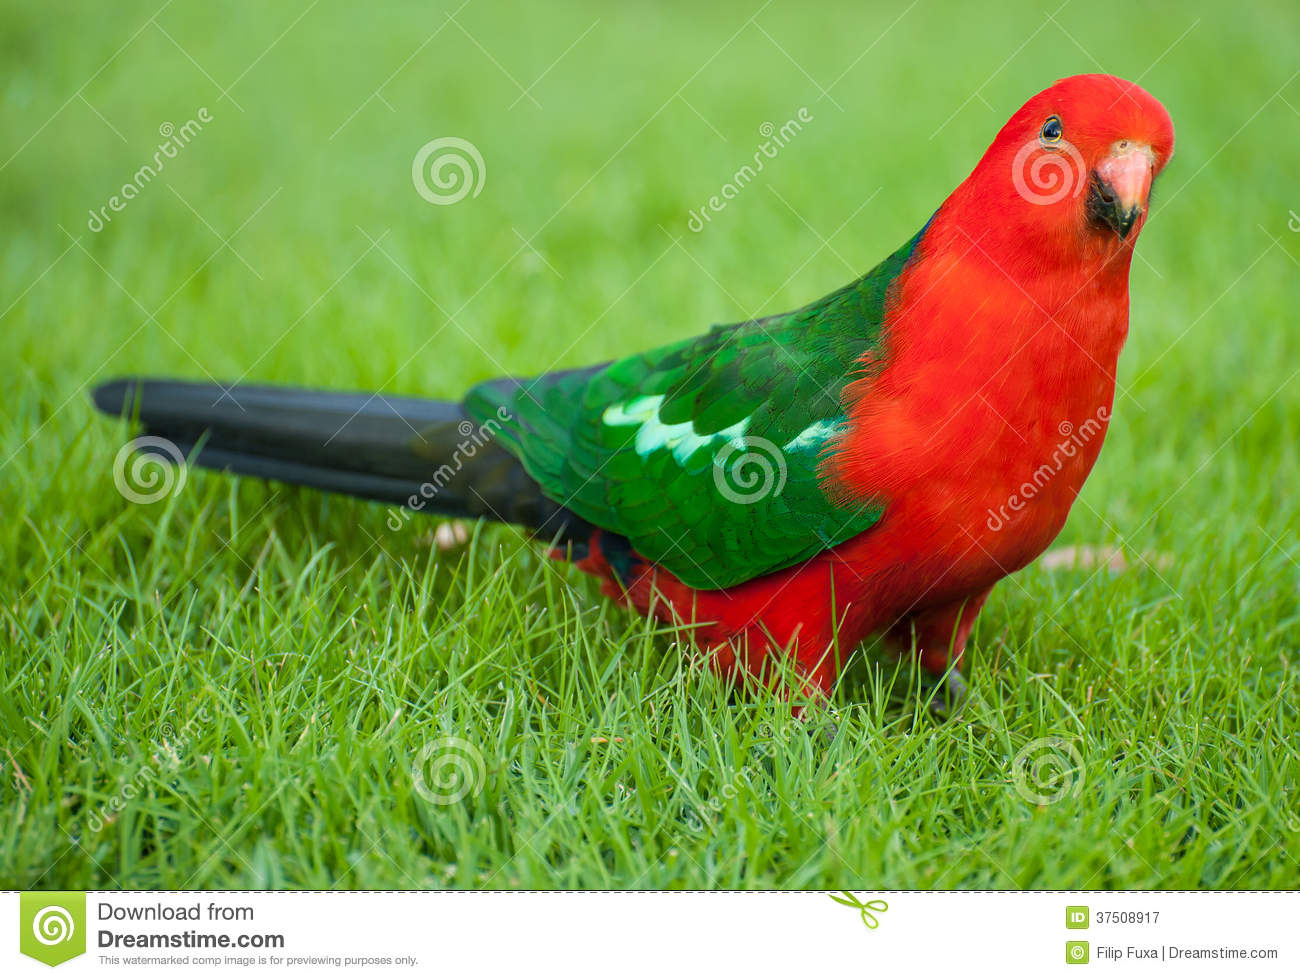 King Parrot clipart #12, Download drawings